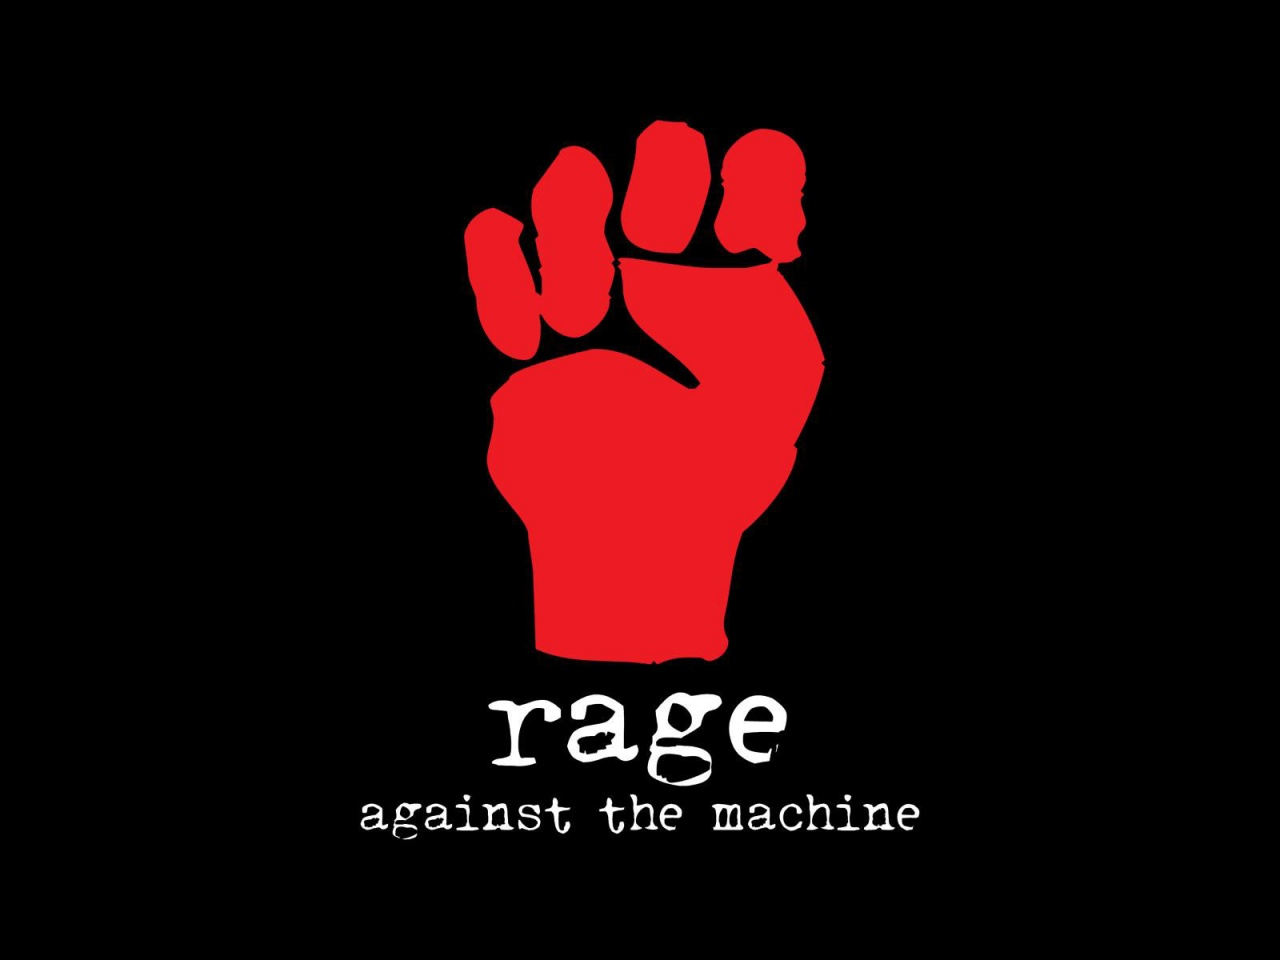 rage against the machine in the name of